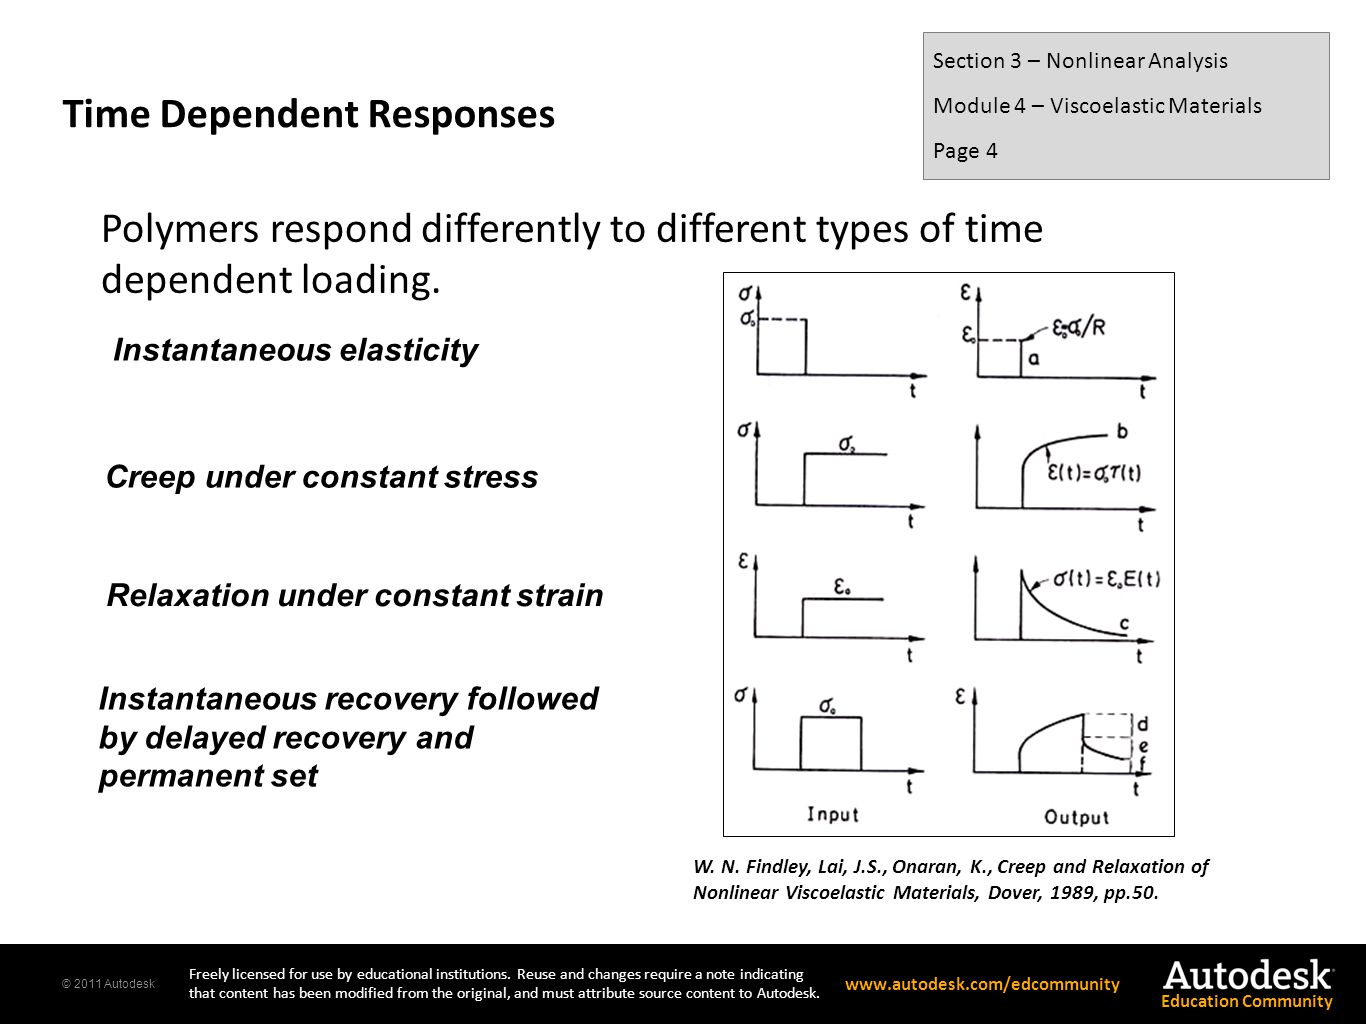 Time Dependent Responses